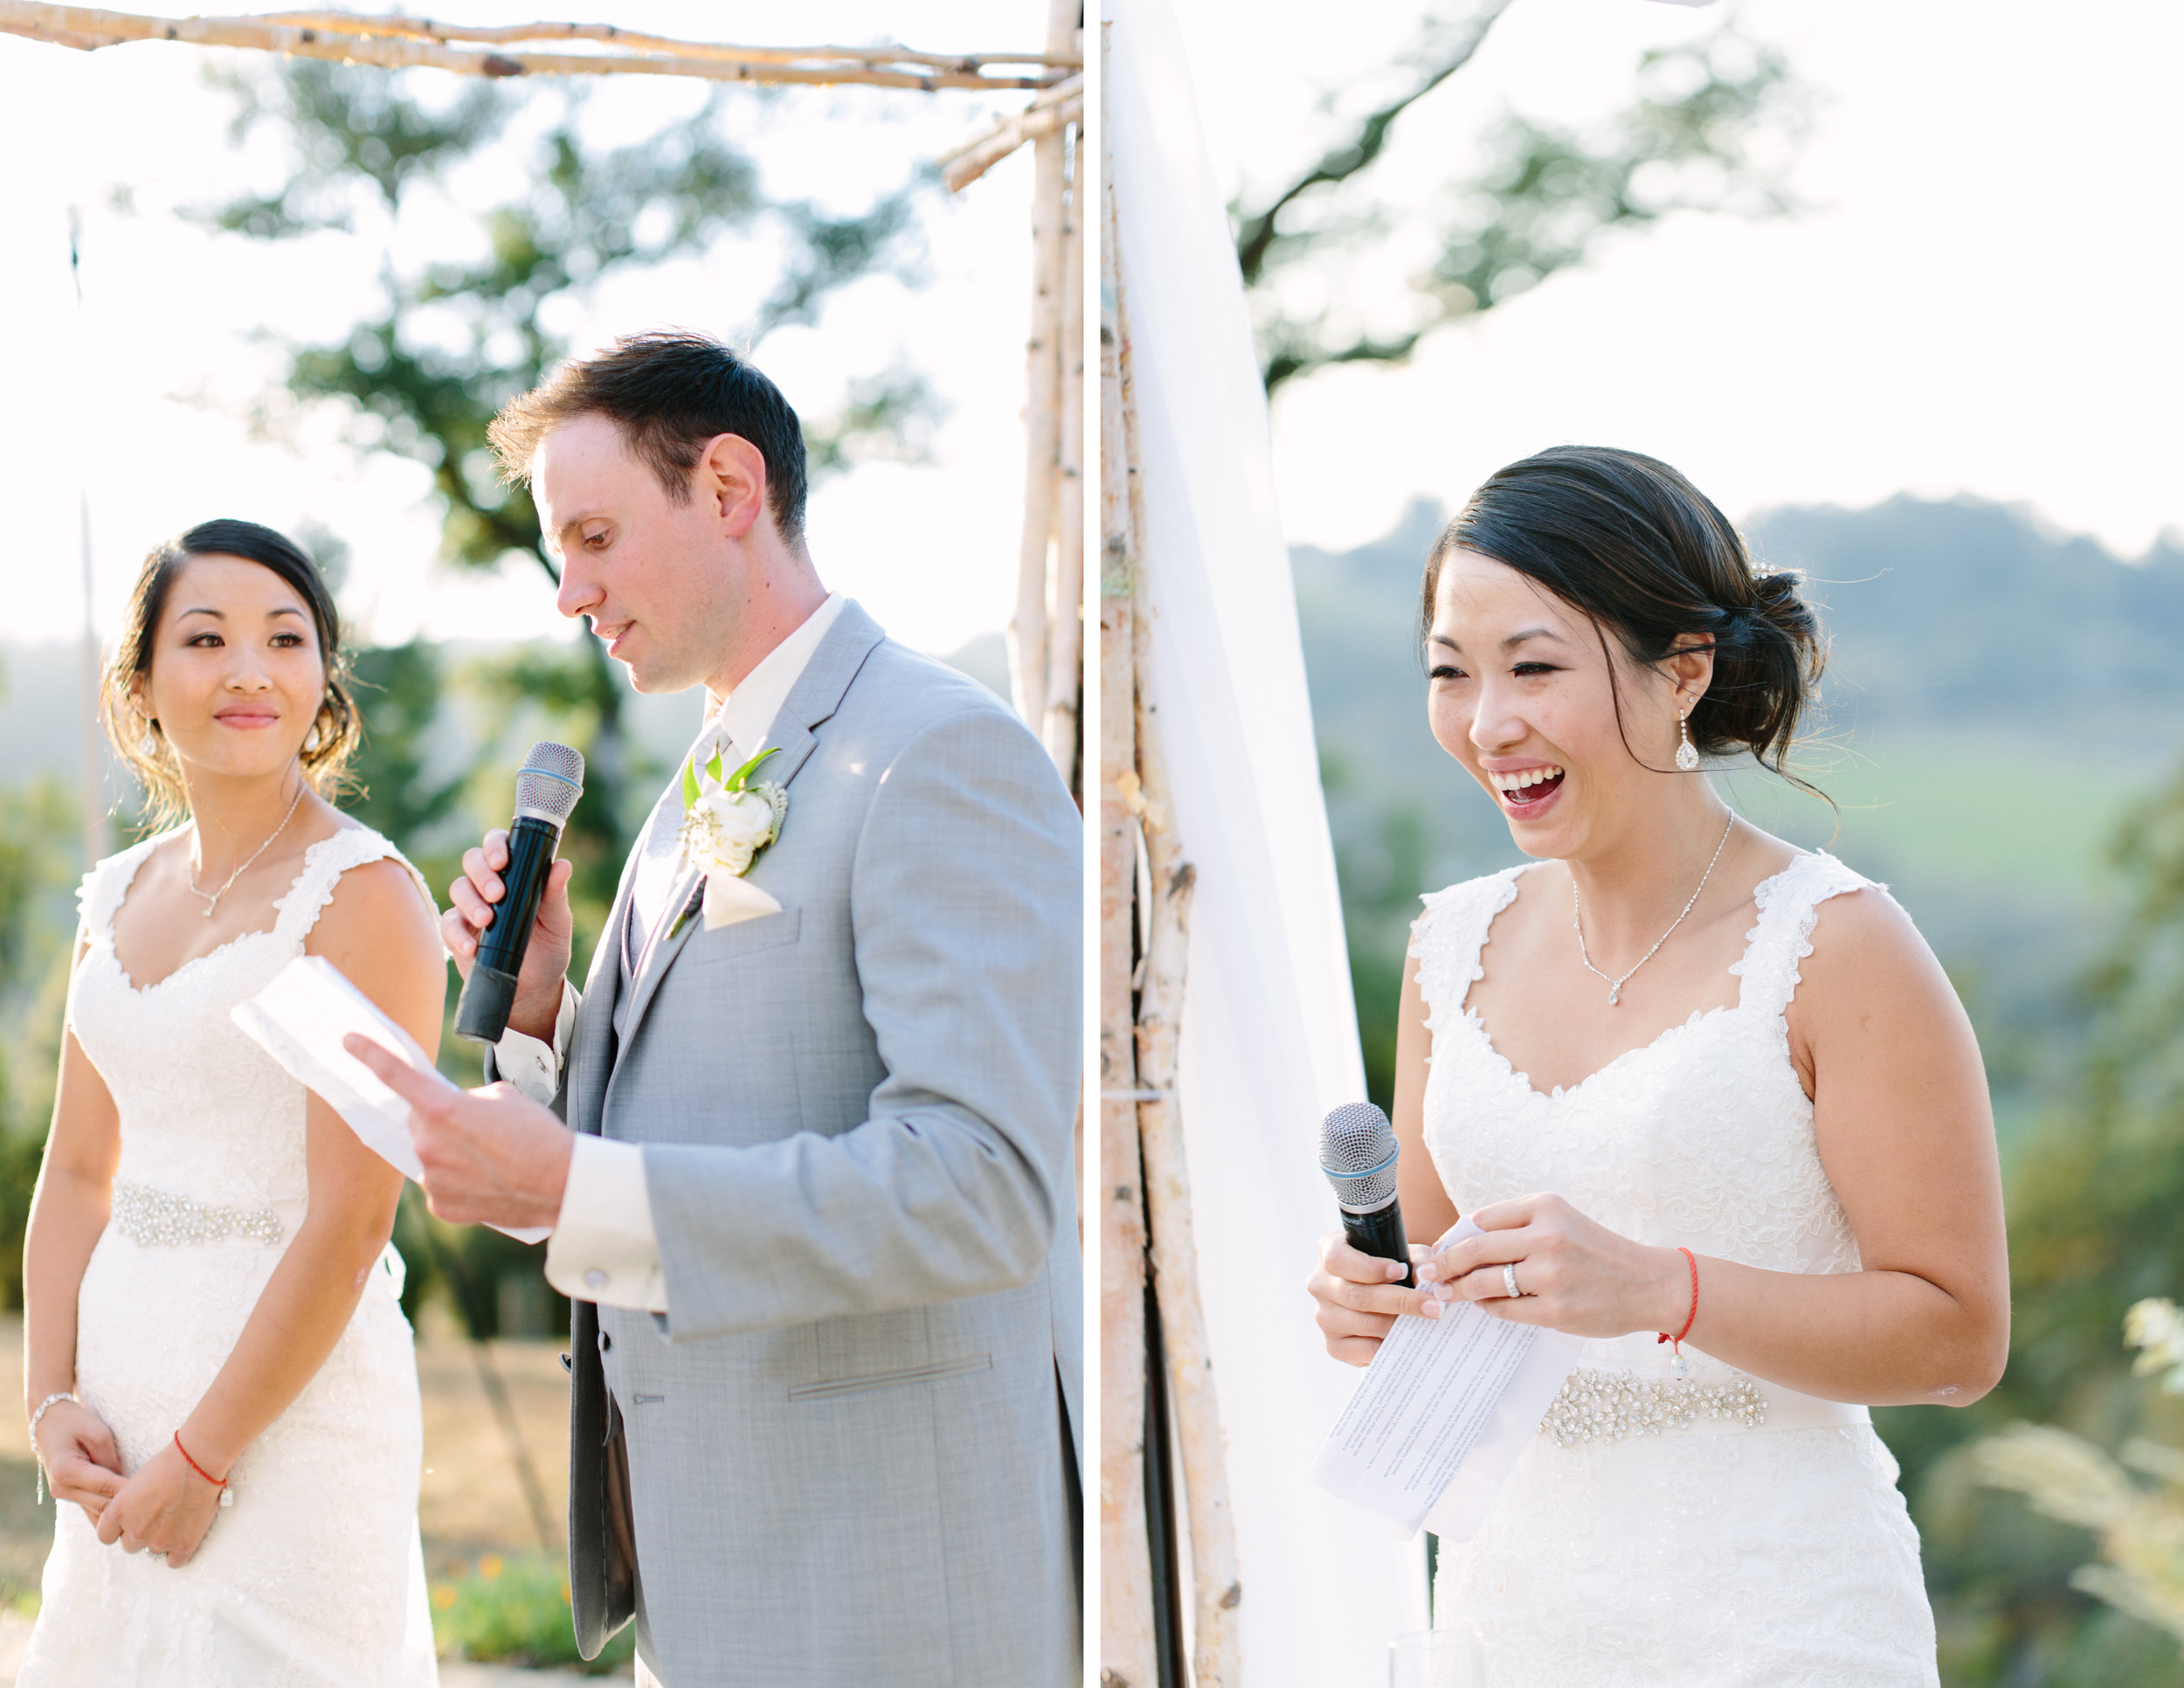 sonoma country wedding 16.jpg